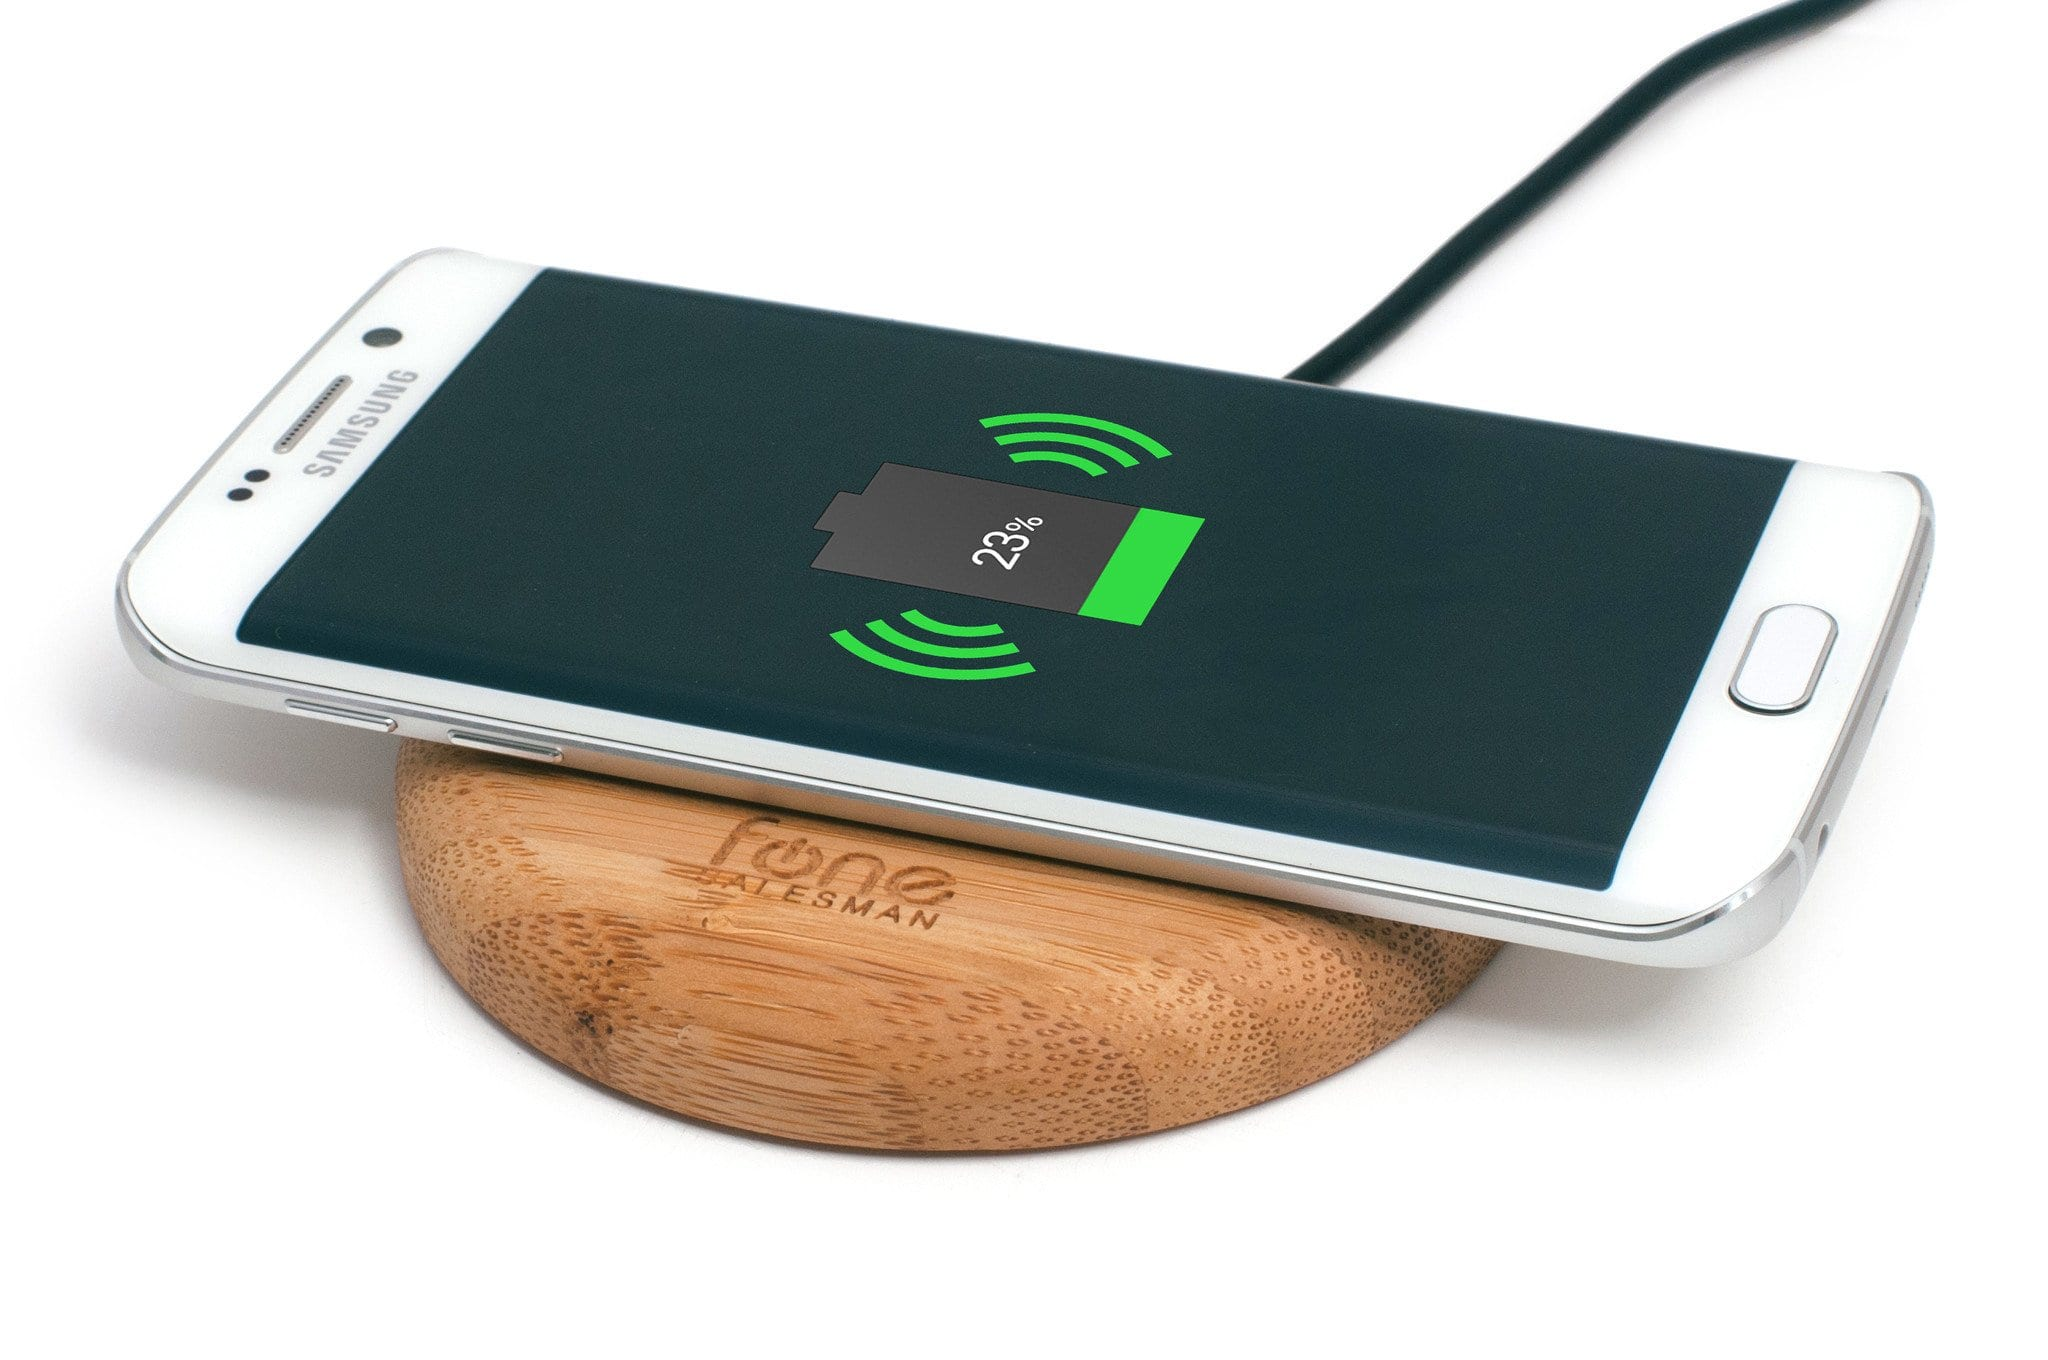 WhatUpp Wireless Charger, With Range Of Three Feet, Gets FCC Approval